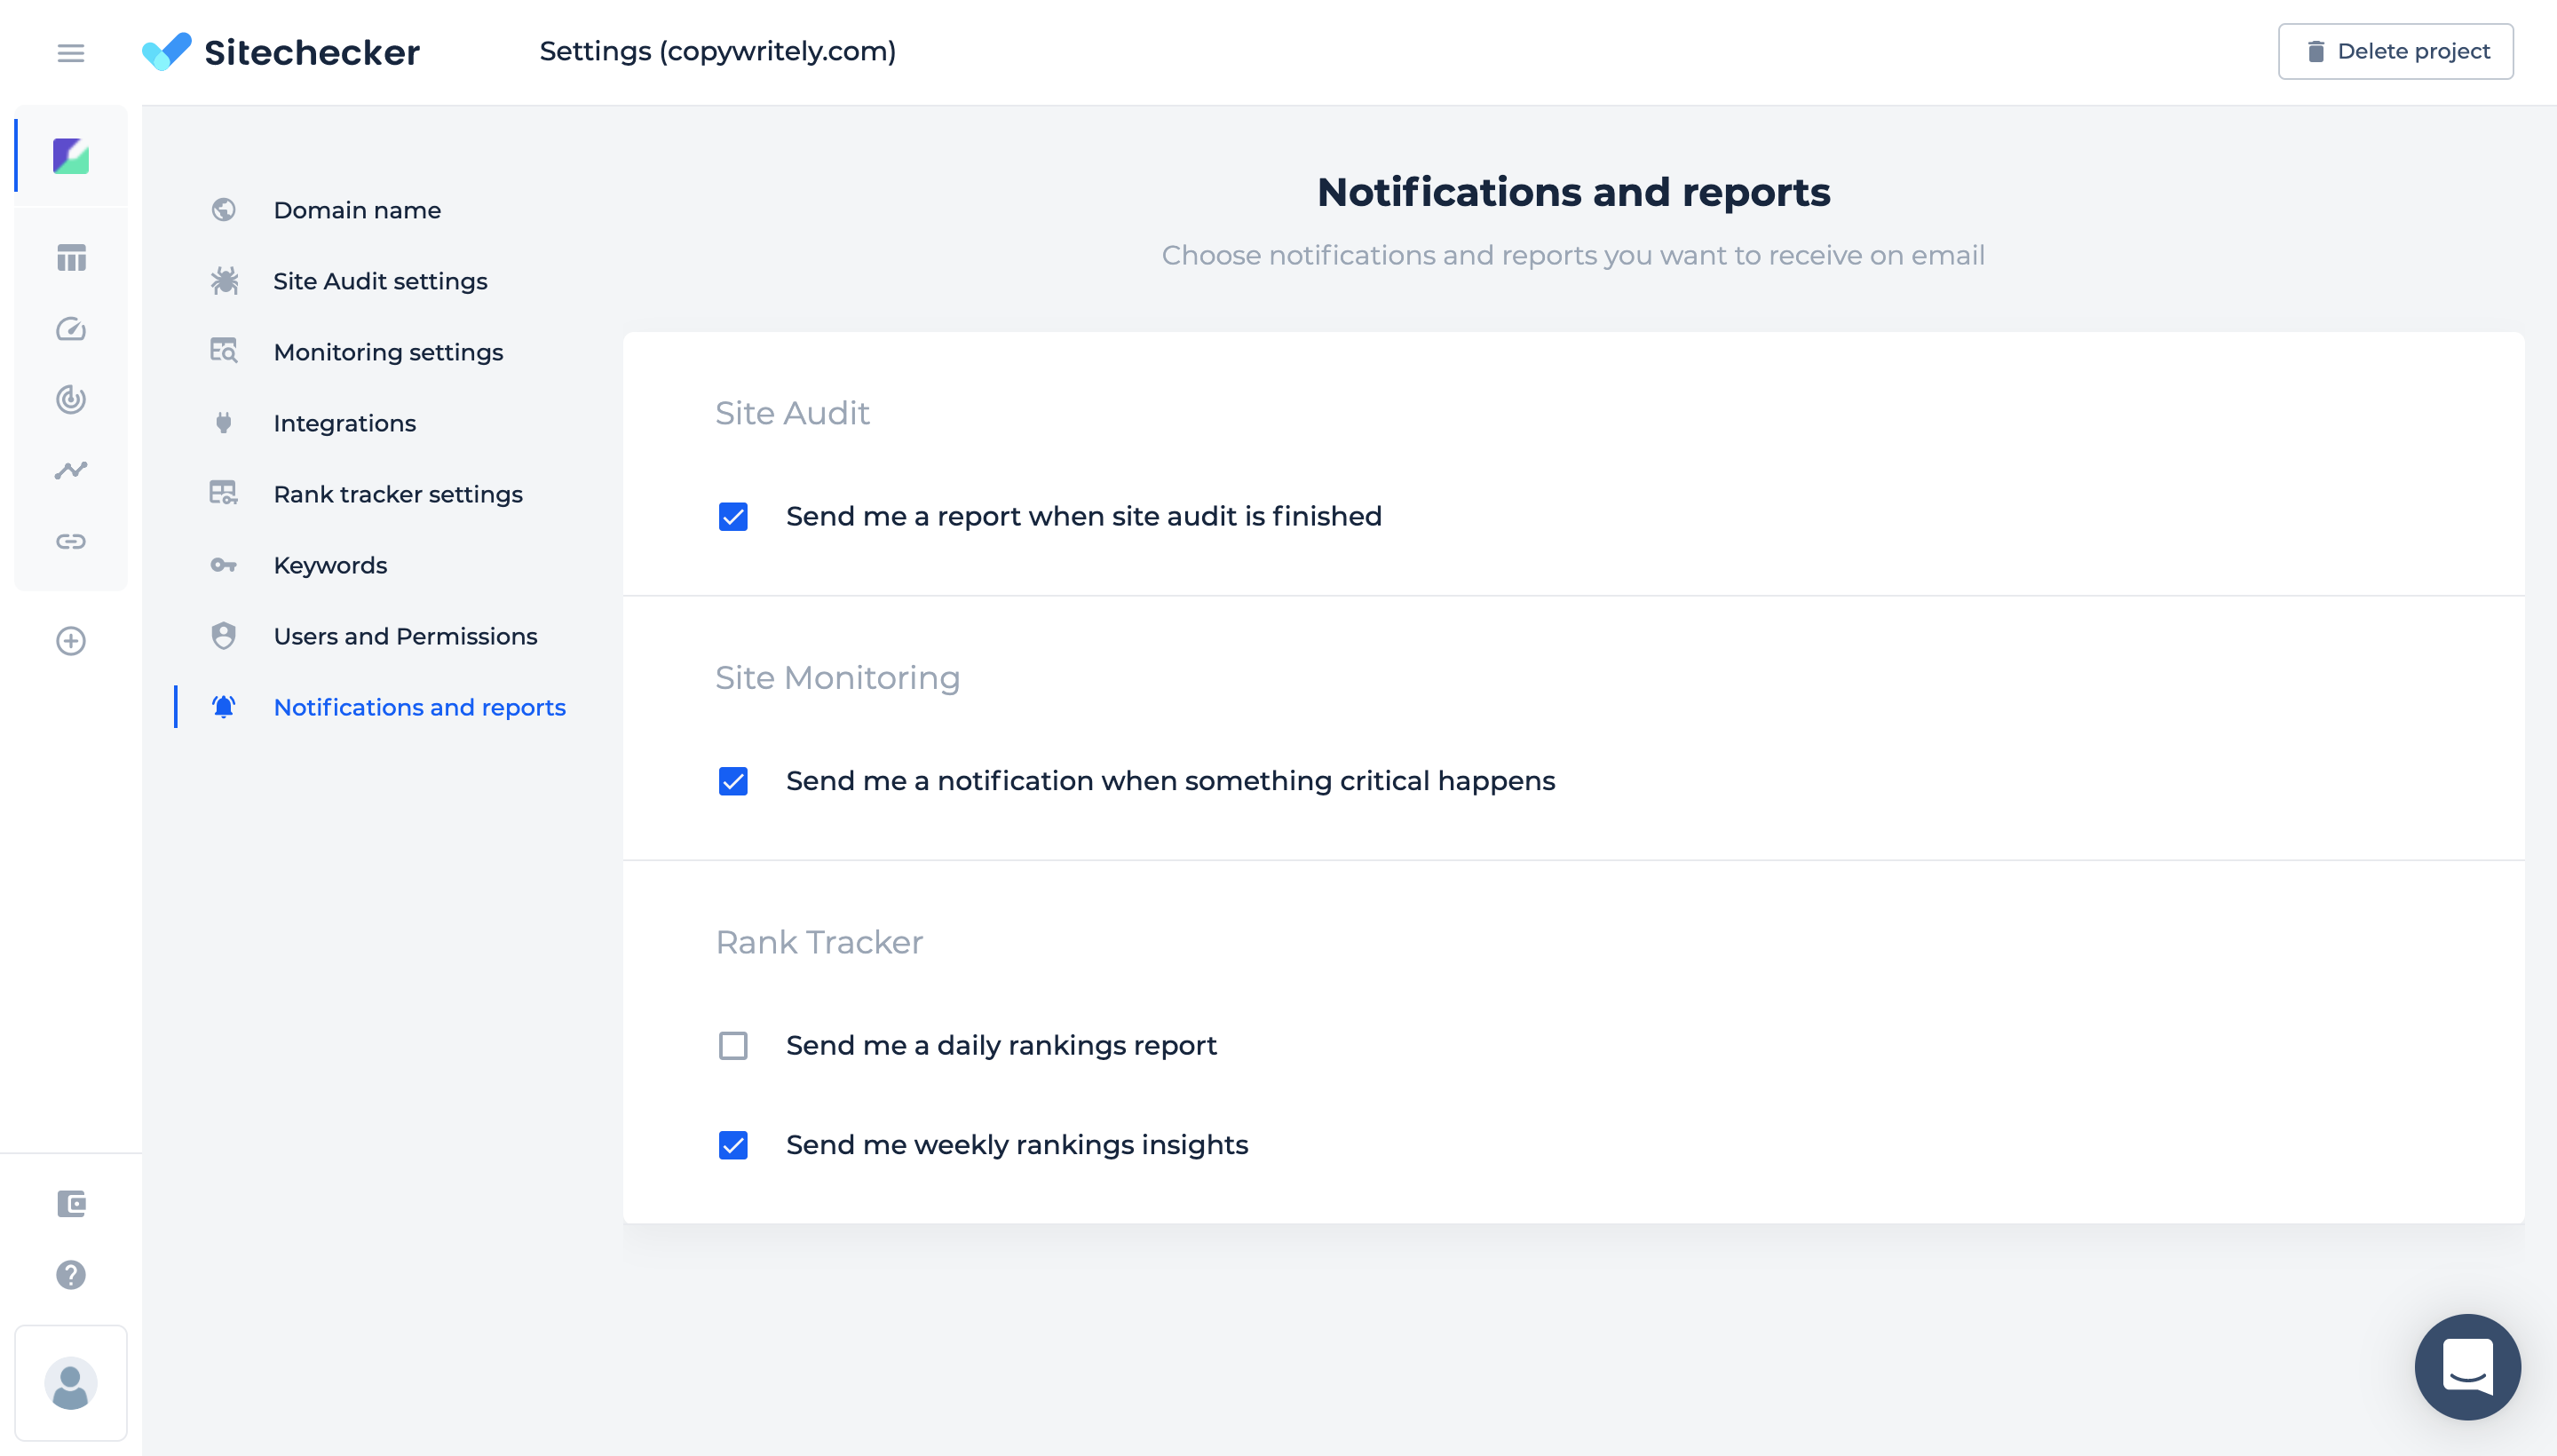 manage project notifications and reports